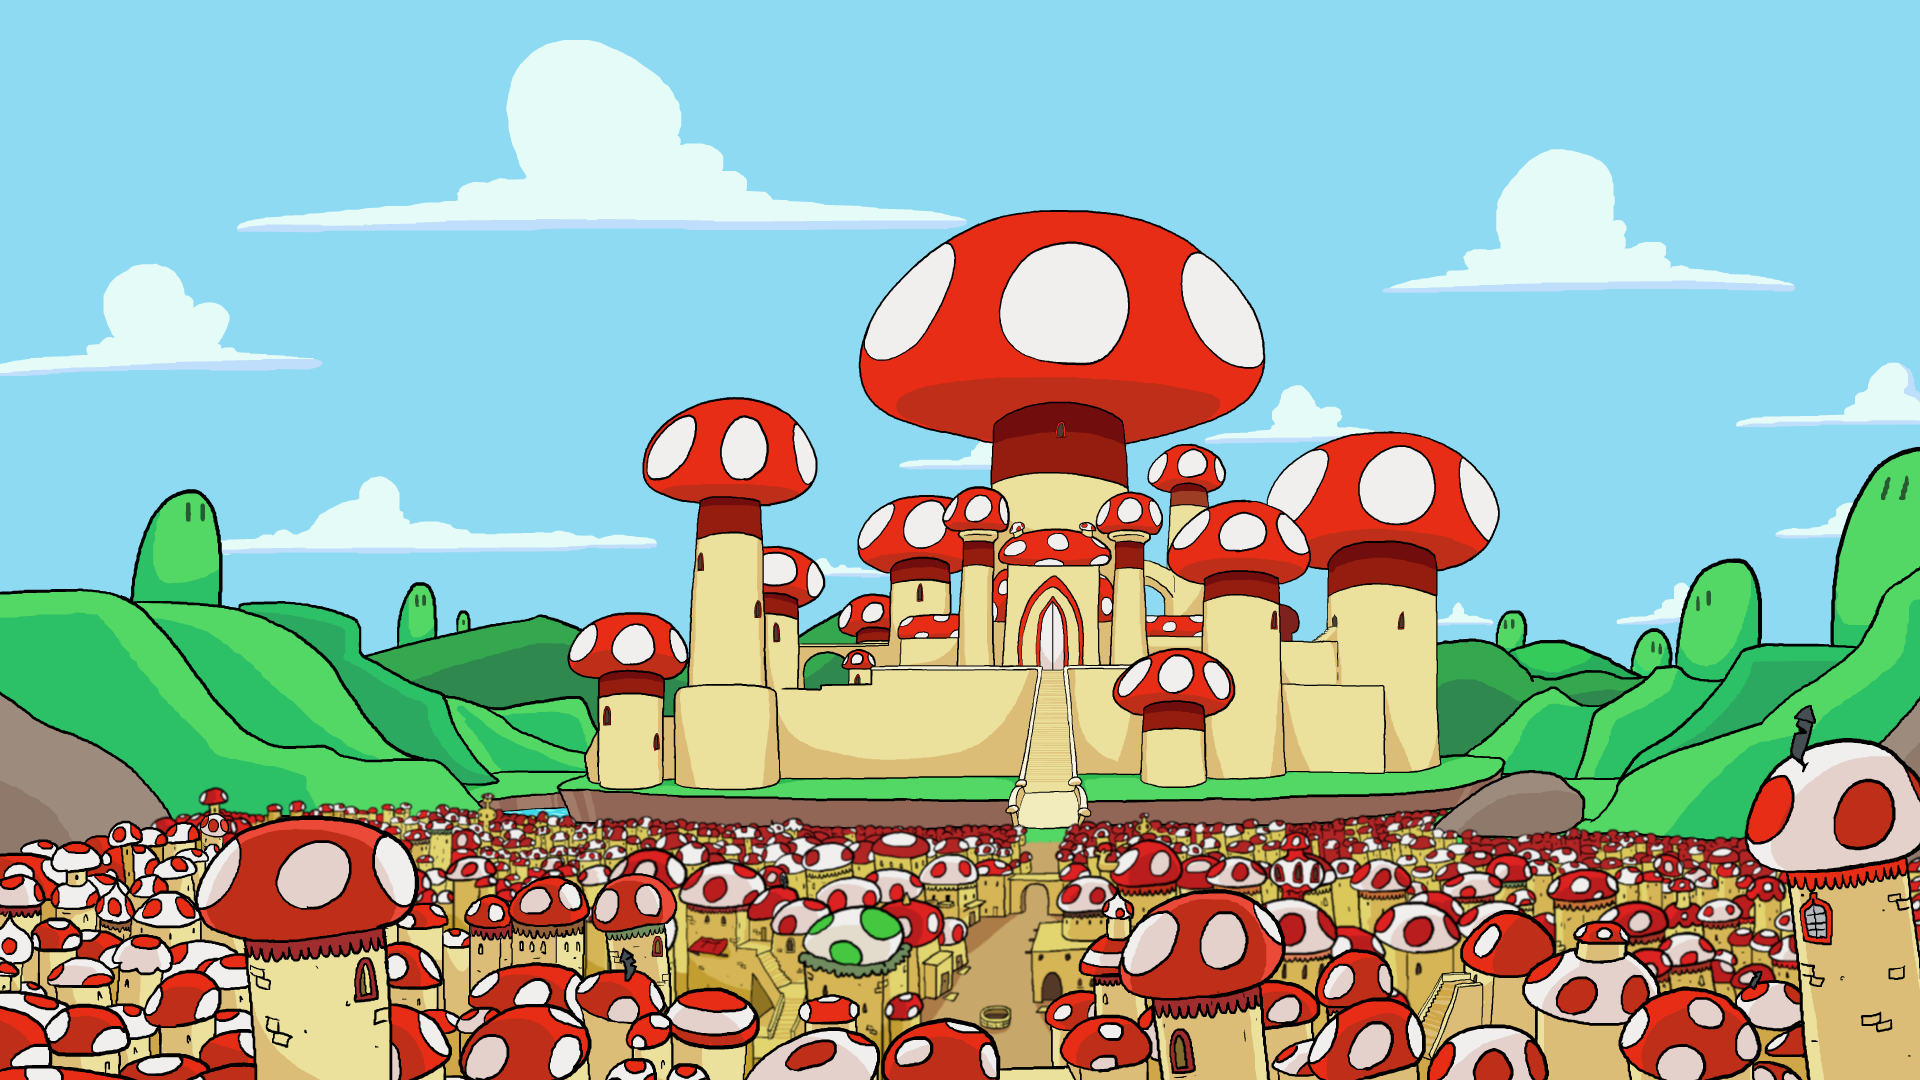 Mushroom Kingdom Peaceful By Terminalmontage On Deviantart